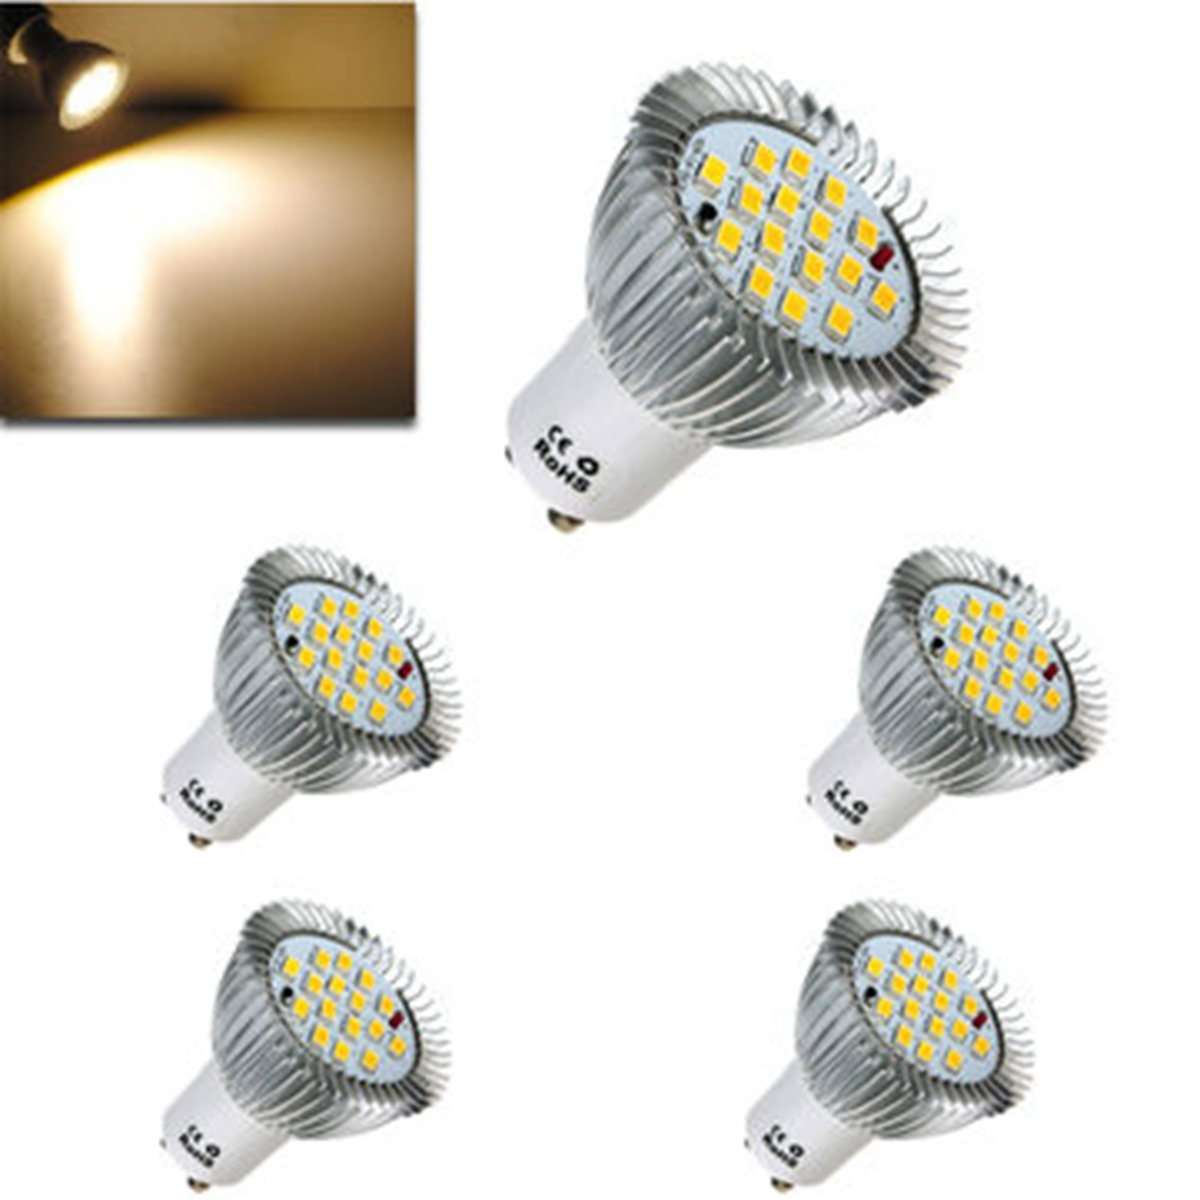 5x 6.4W LED Light Bulb GU10 16 LED 5630 SMD Energy Saving Lamp Bulb Spotlight Spot Lights Bulbs Warm White Lighting AC 85-265V 680lm mr16 7w cob warm white led spot bulb energy saving light 85 265v